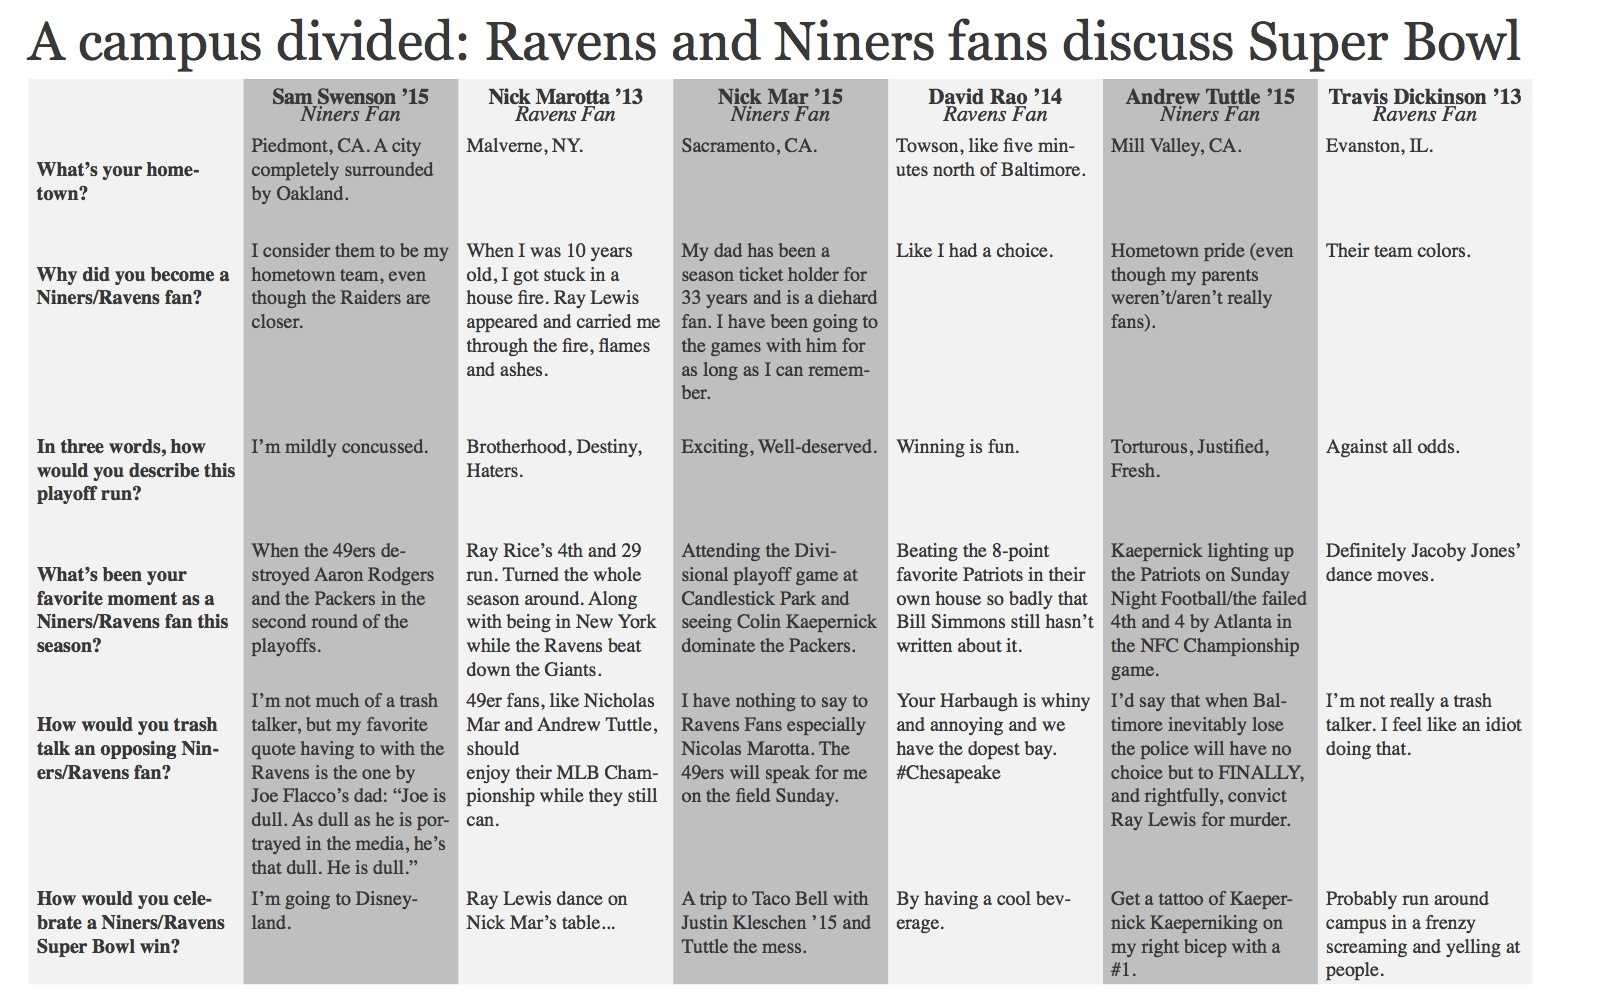 A campus divided: Ravens and Niners fans discuss Super Bowl